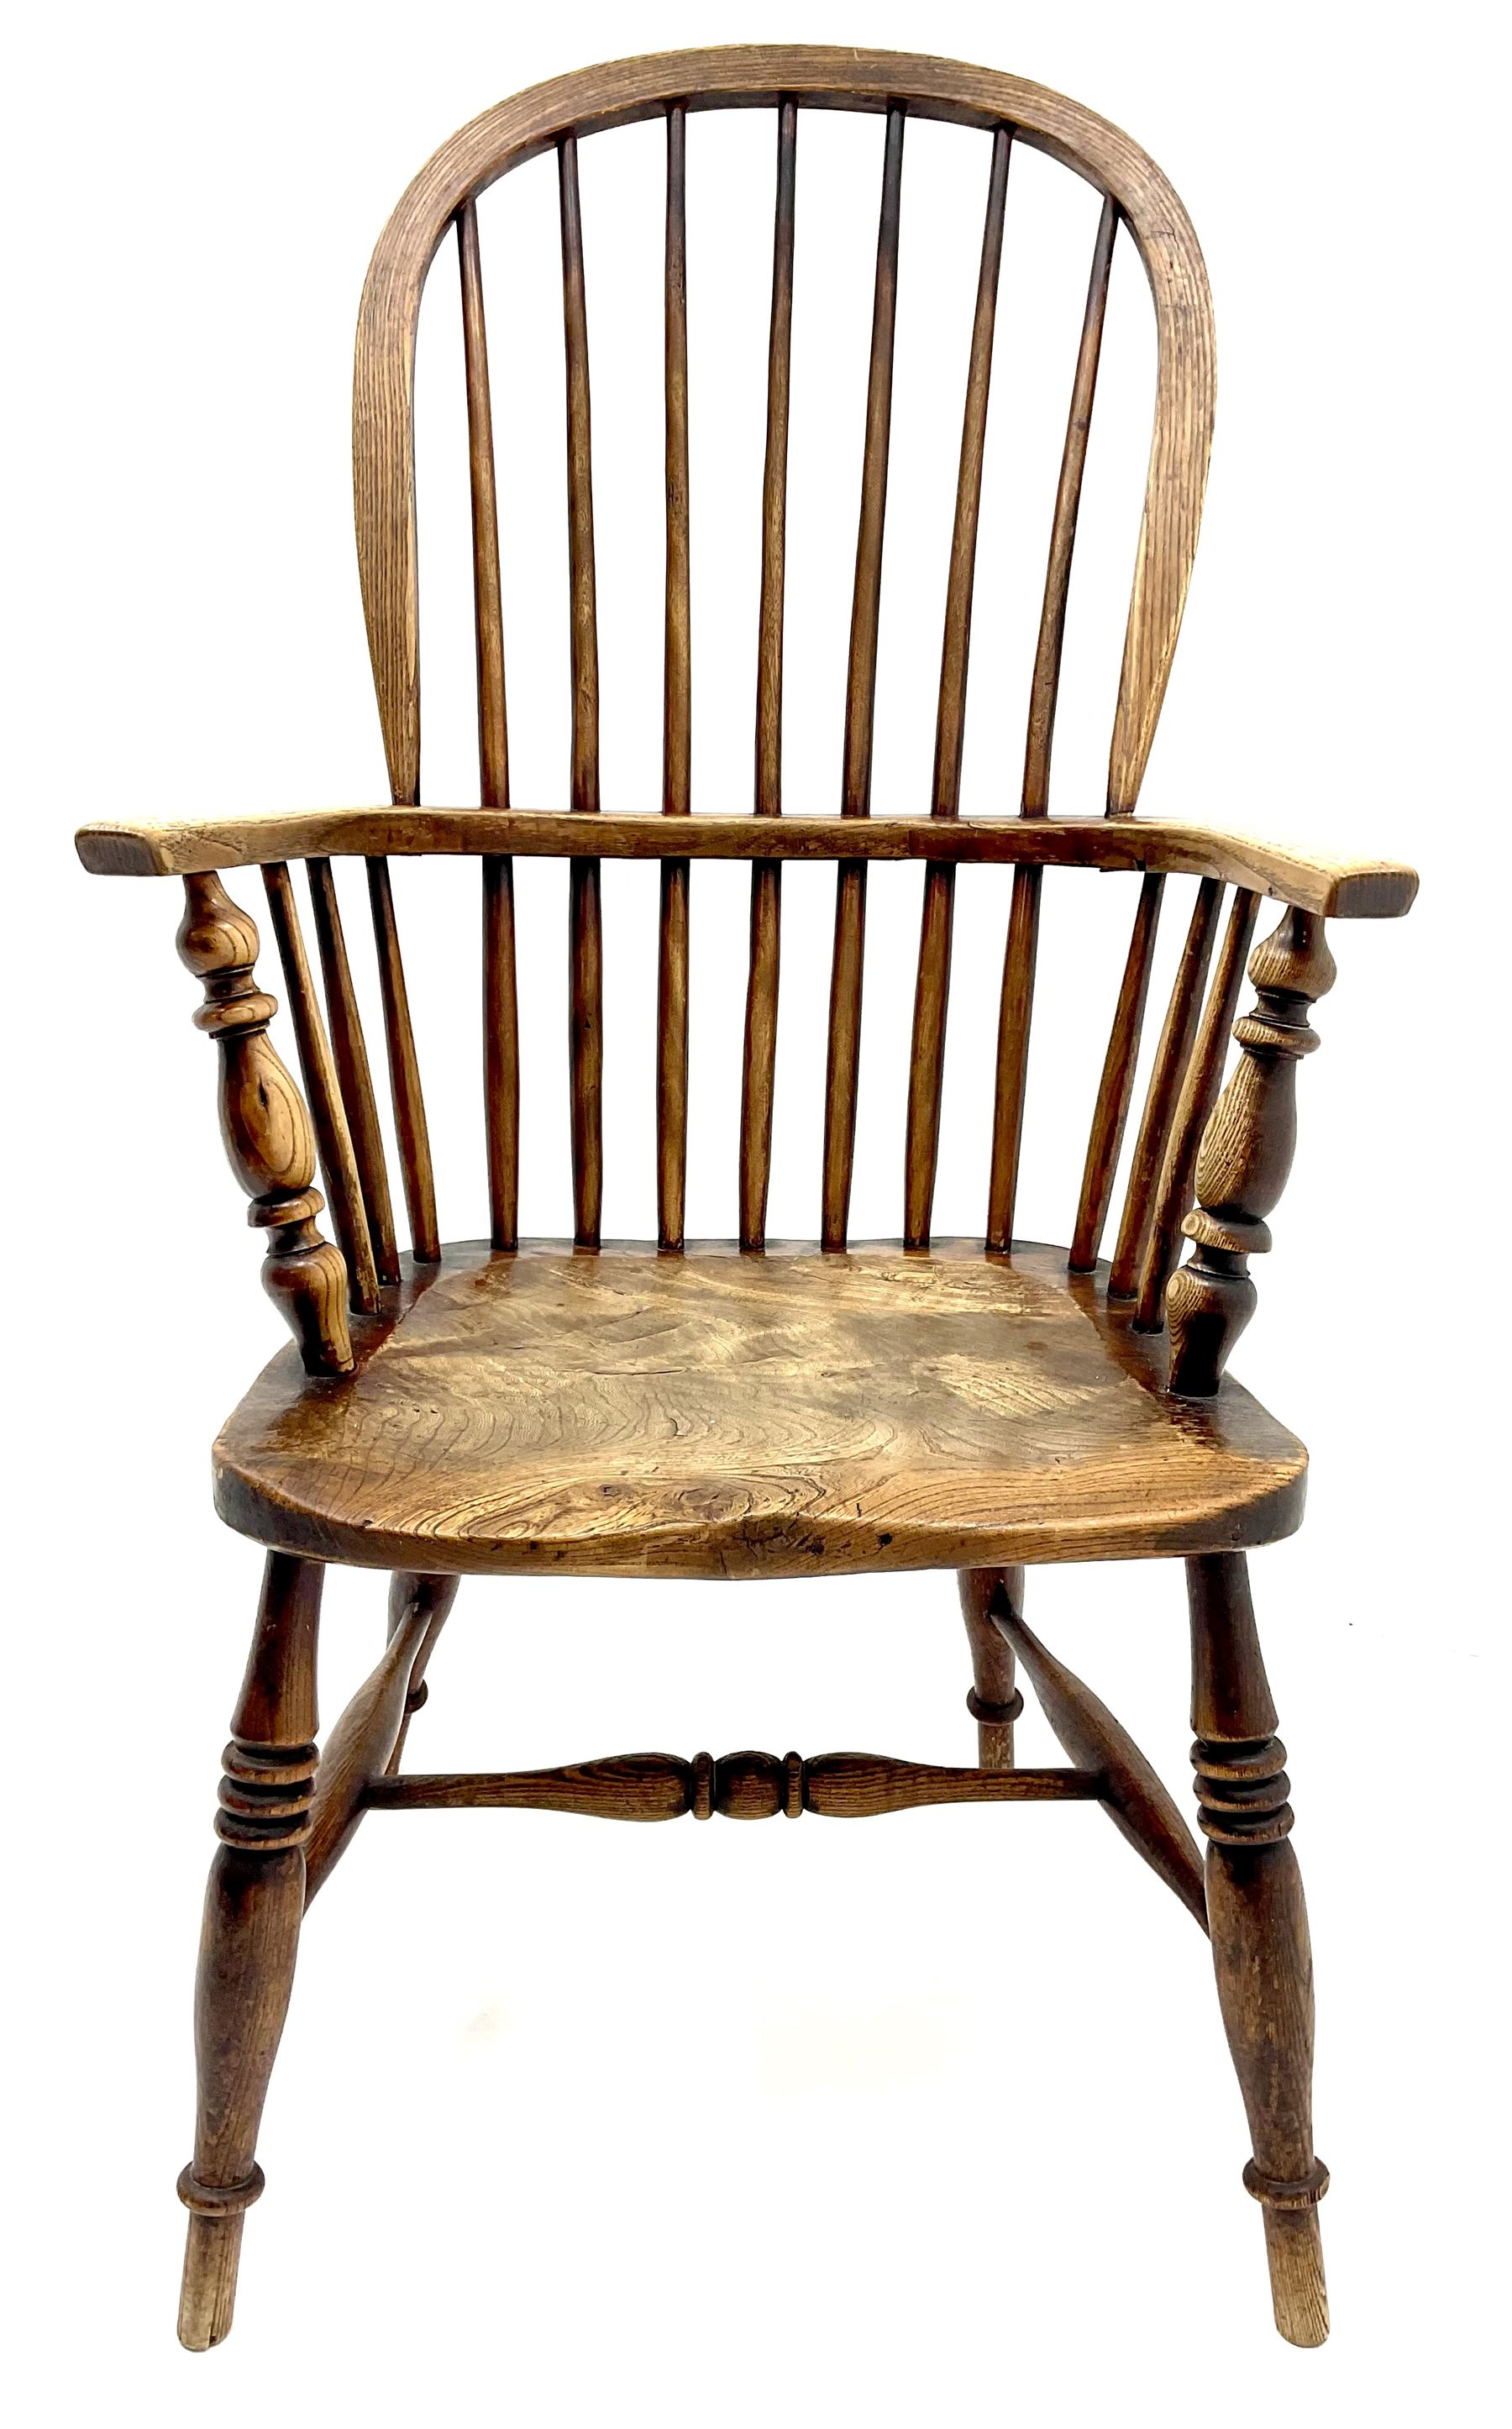 19th century ash and elm high back Windsor chair